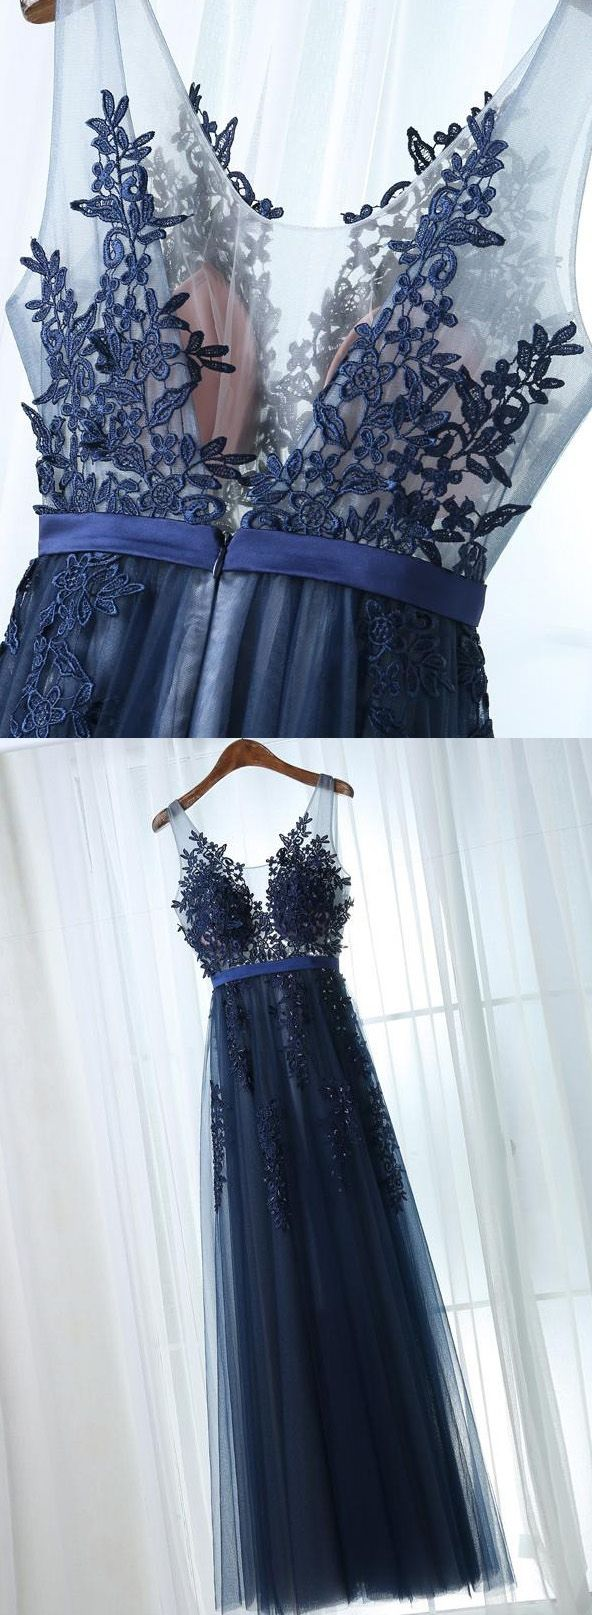 Outlet sleeveless dresses long navy evening prom dresses with